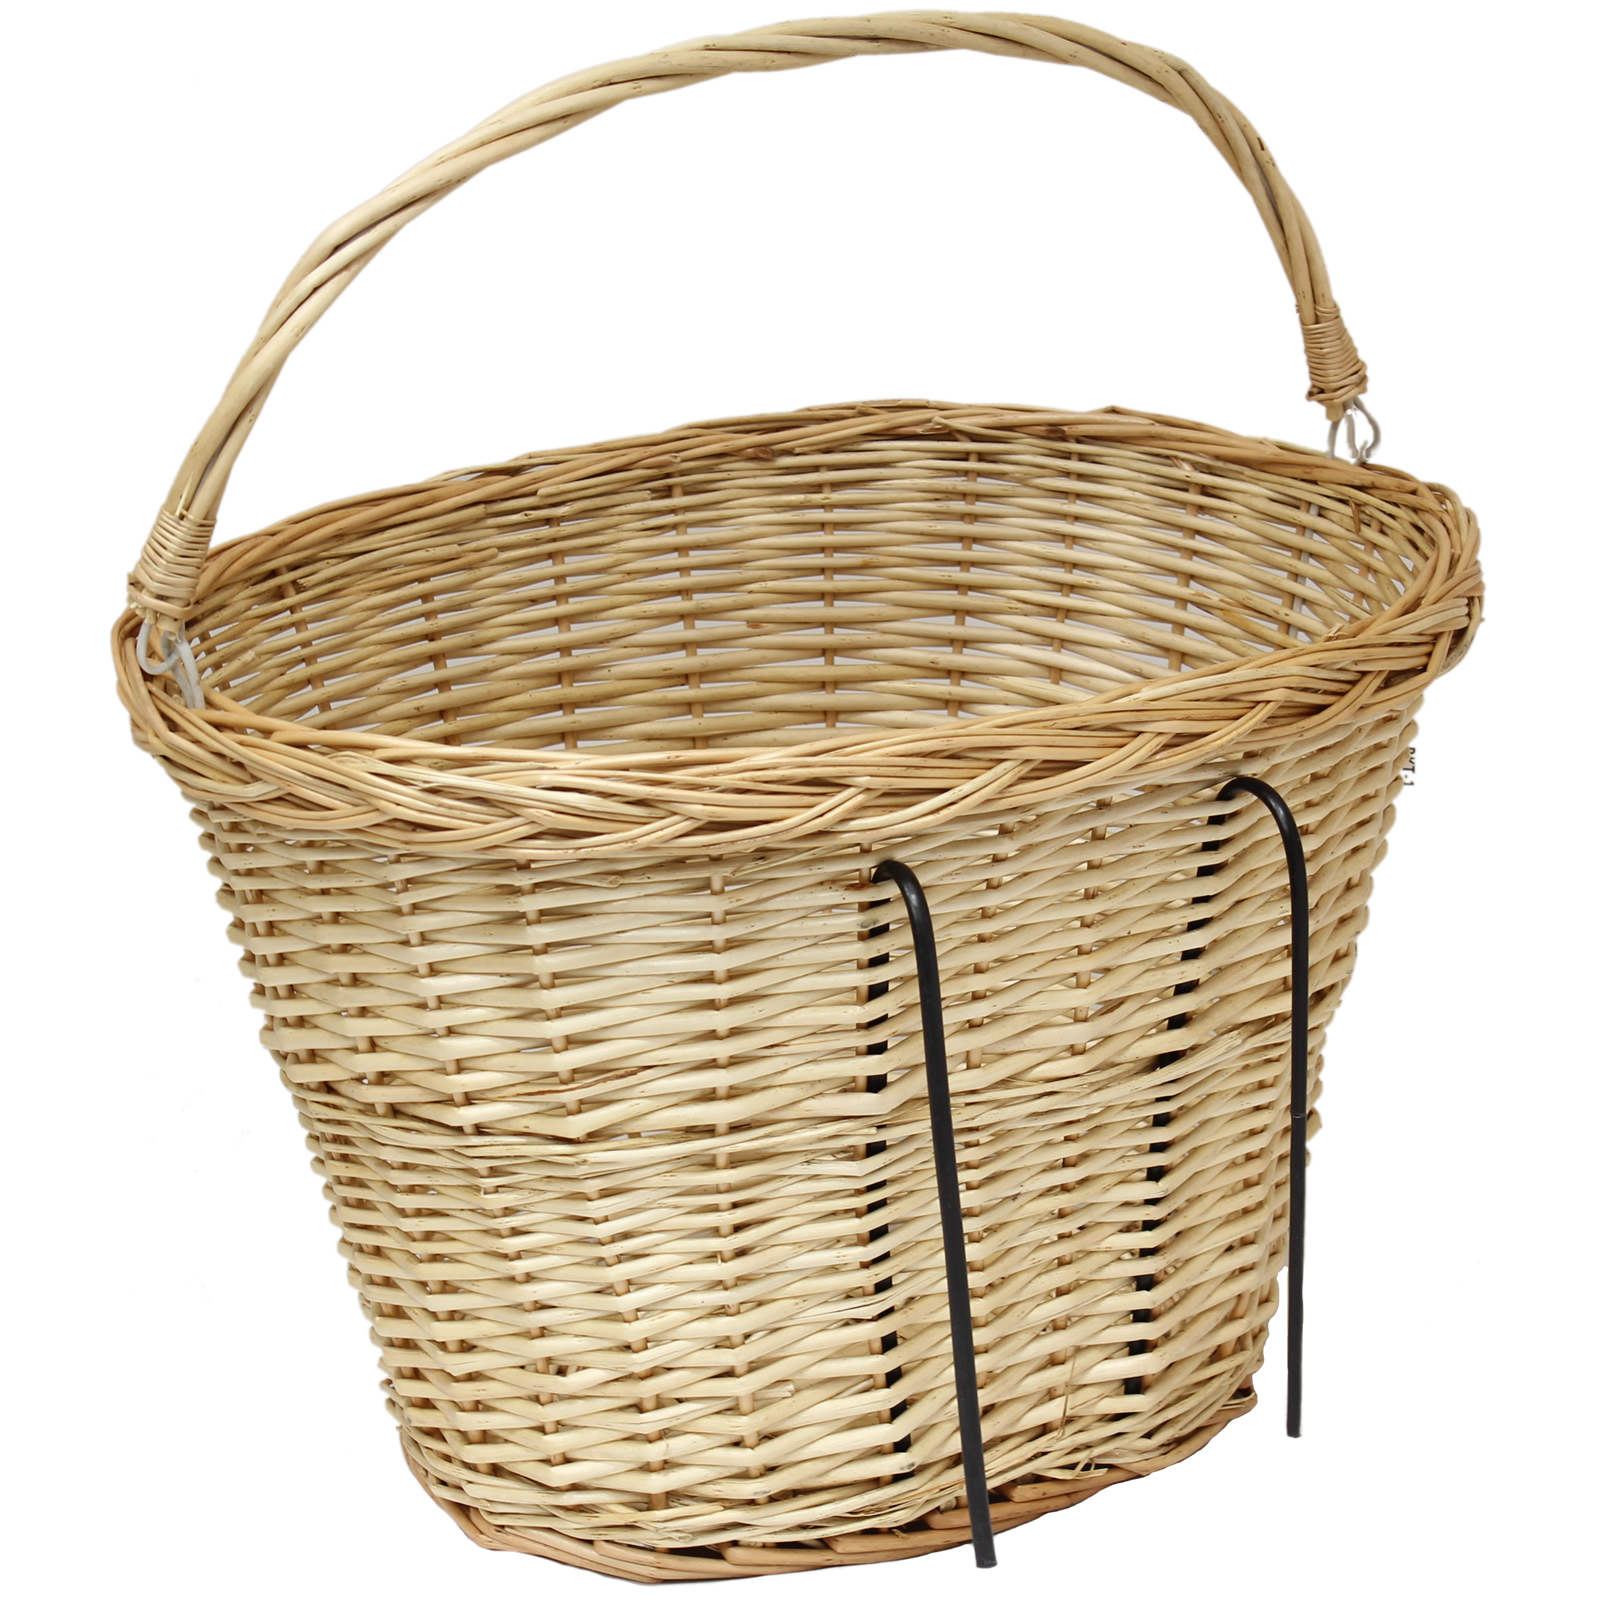 Wicker Bicycle Basket With Handle : Bicycle wicker ping basket with carry handle for front